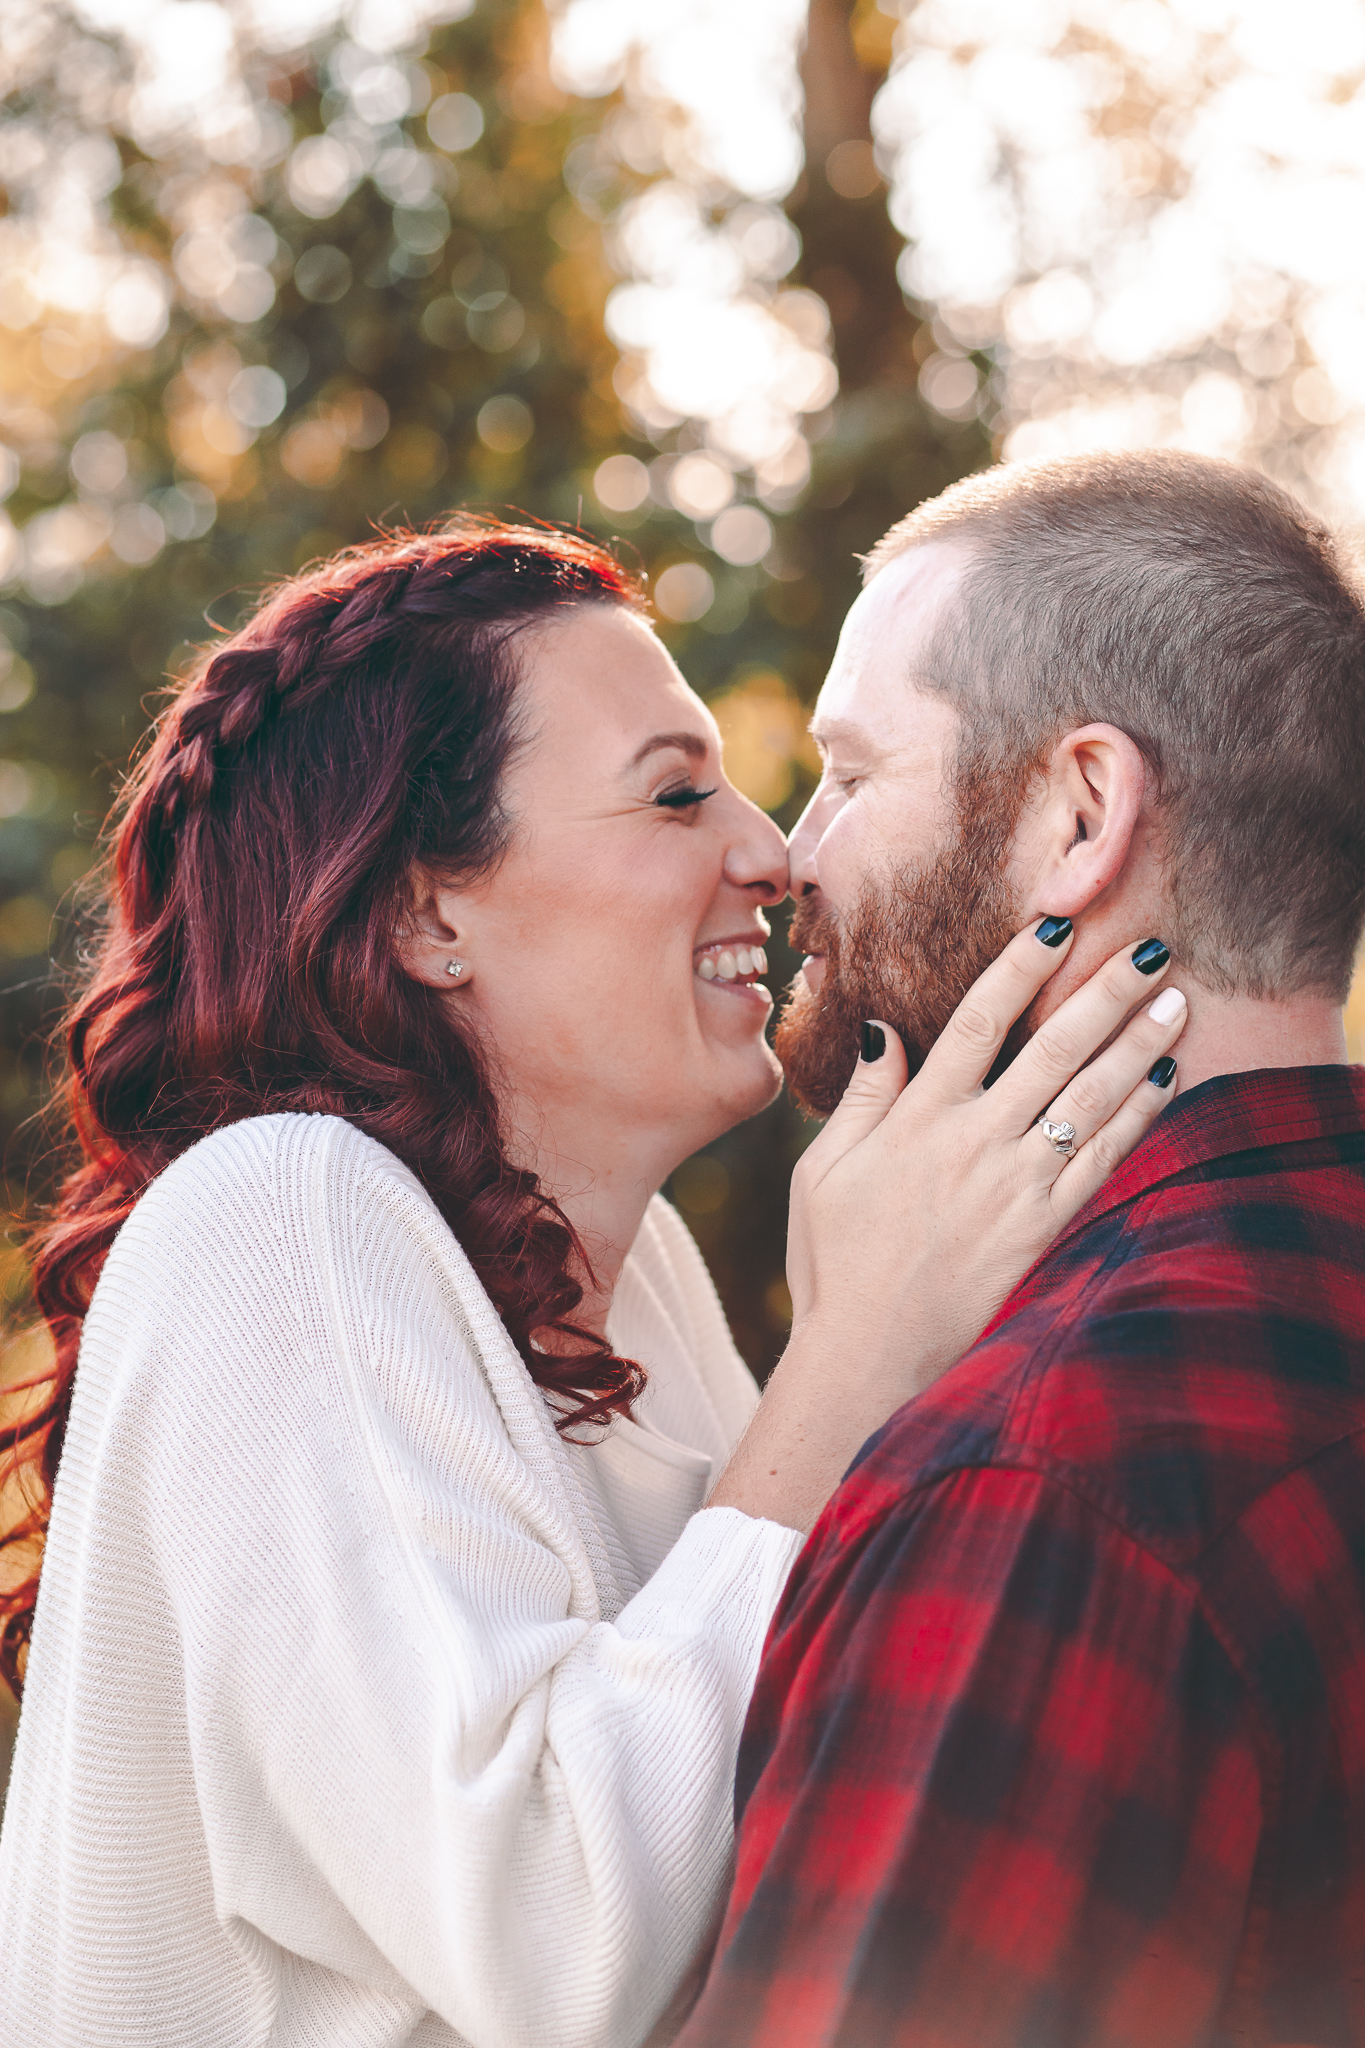 Amy D Photography- Barrie Wedding Photography- Engagement Session- Fall Engagement- Engagement Poses- Barrie Weddings- Wedding Photographer-6.jpg